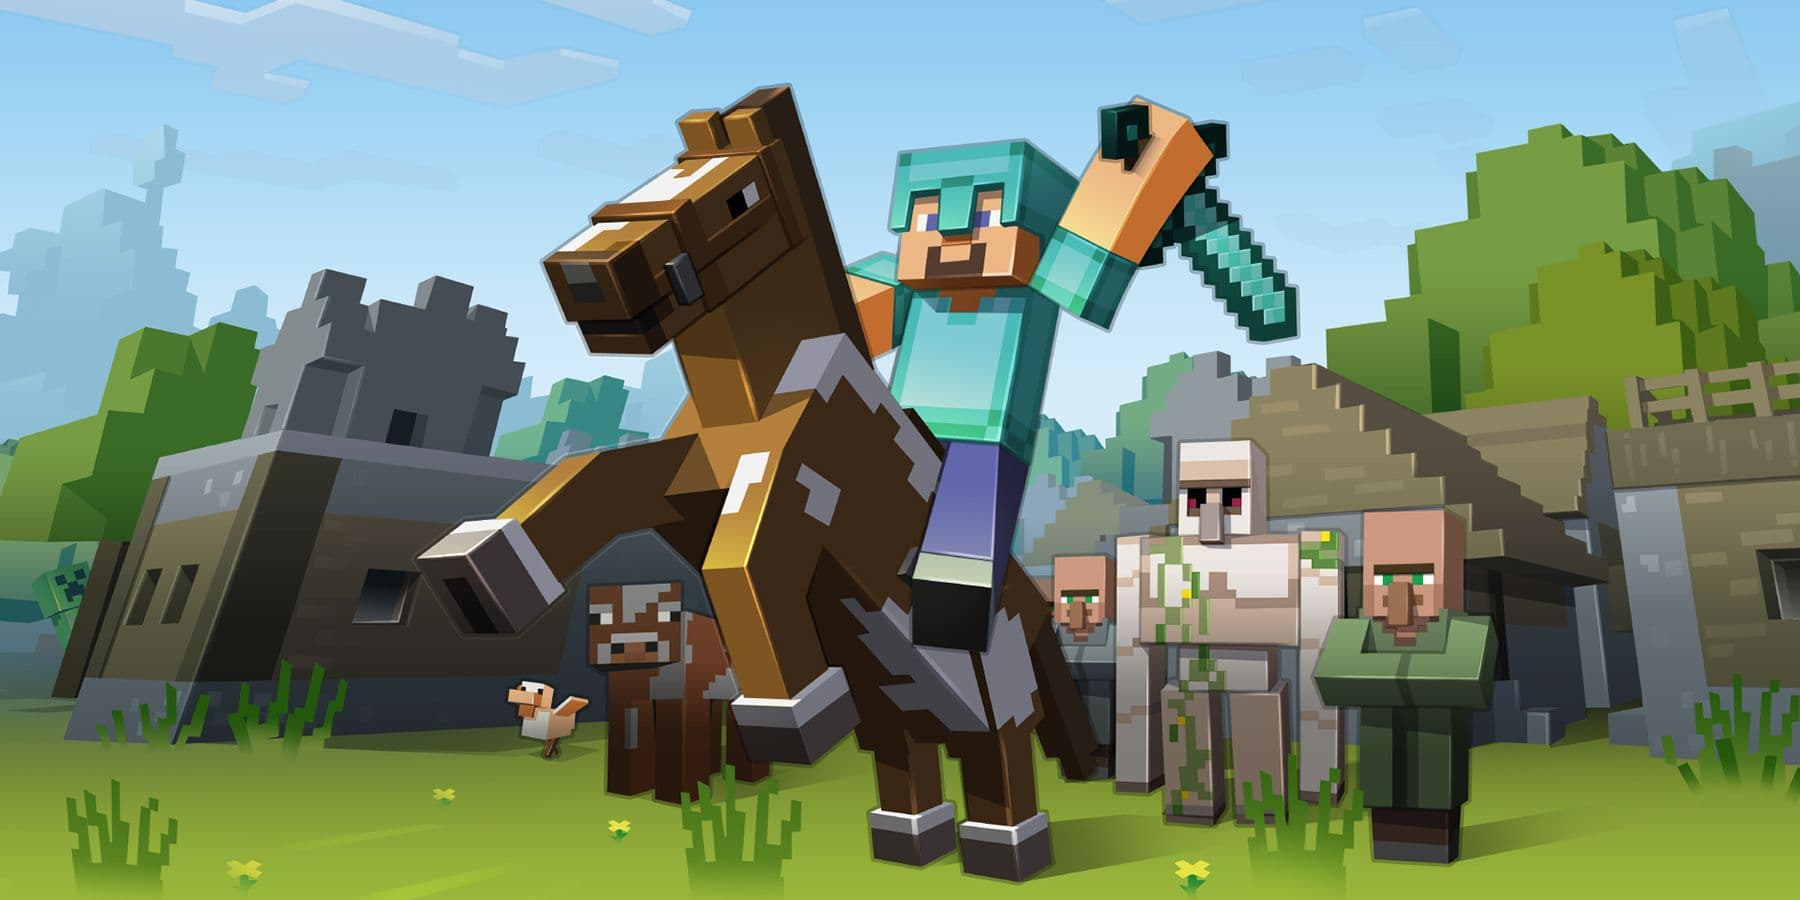 How to Download the Minecraft